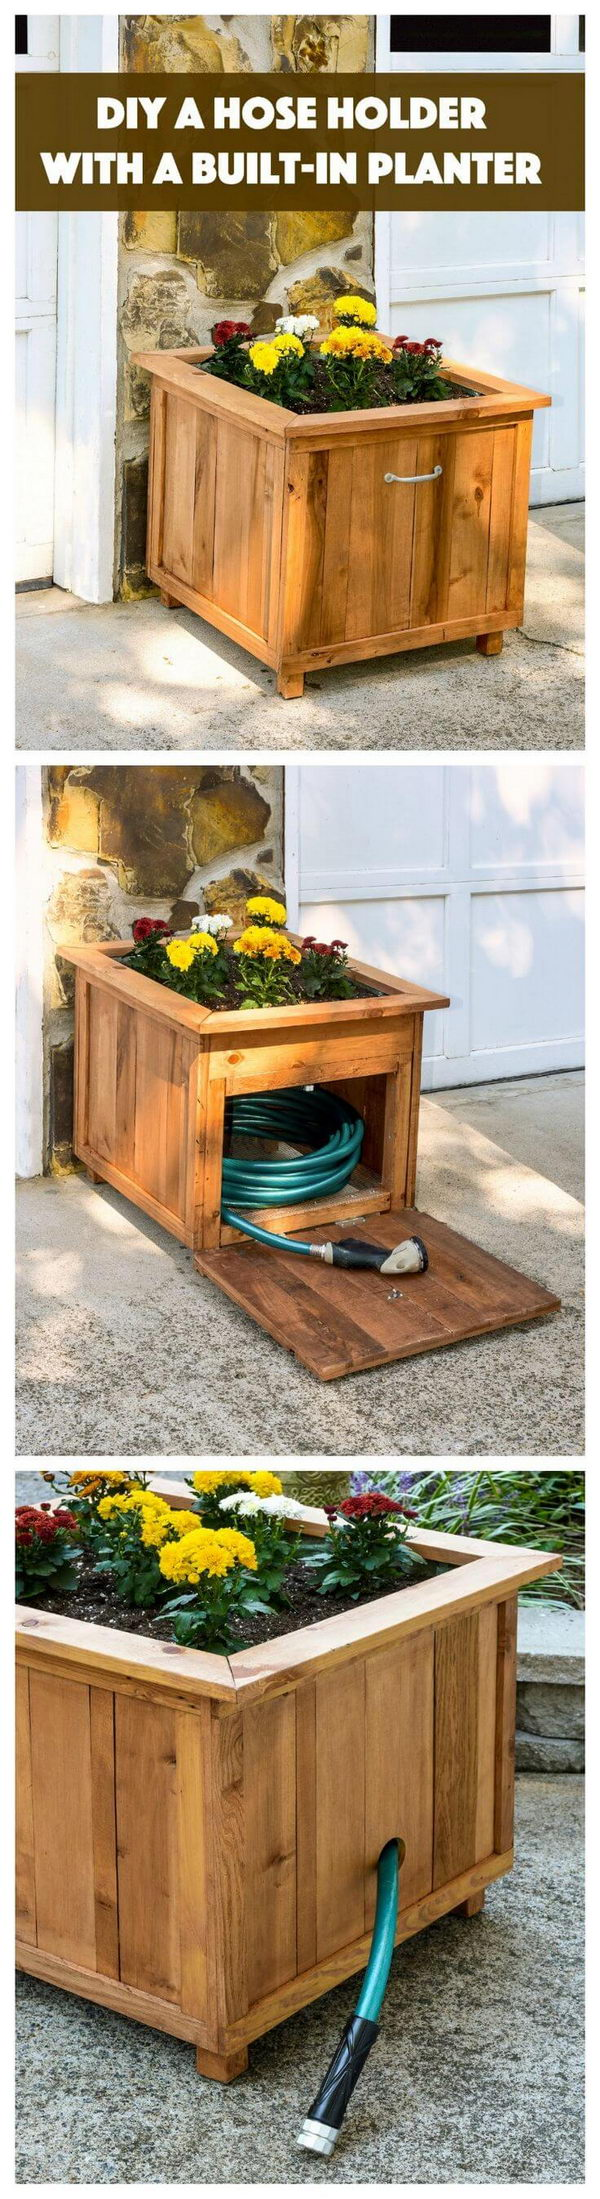 DIY Planter Box & Hose Holder.